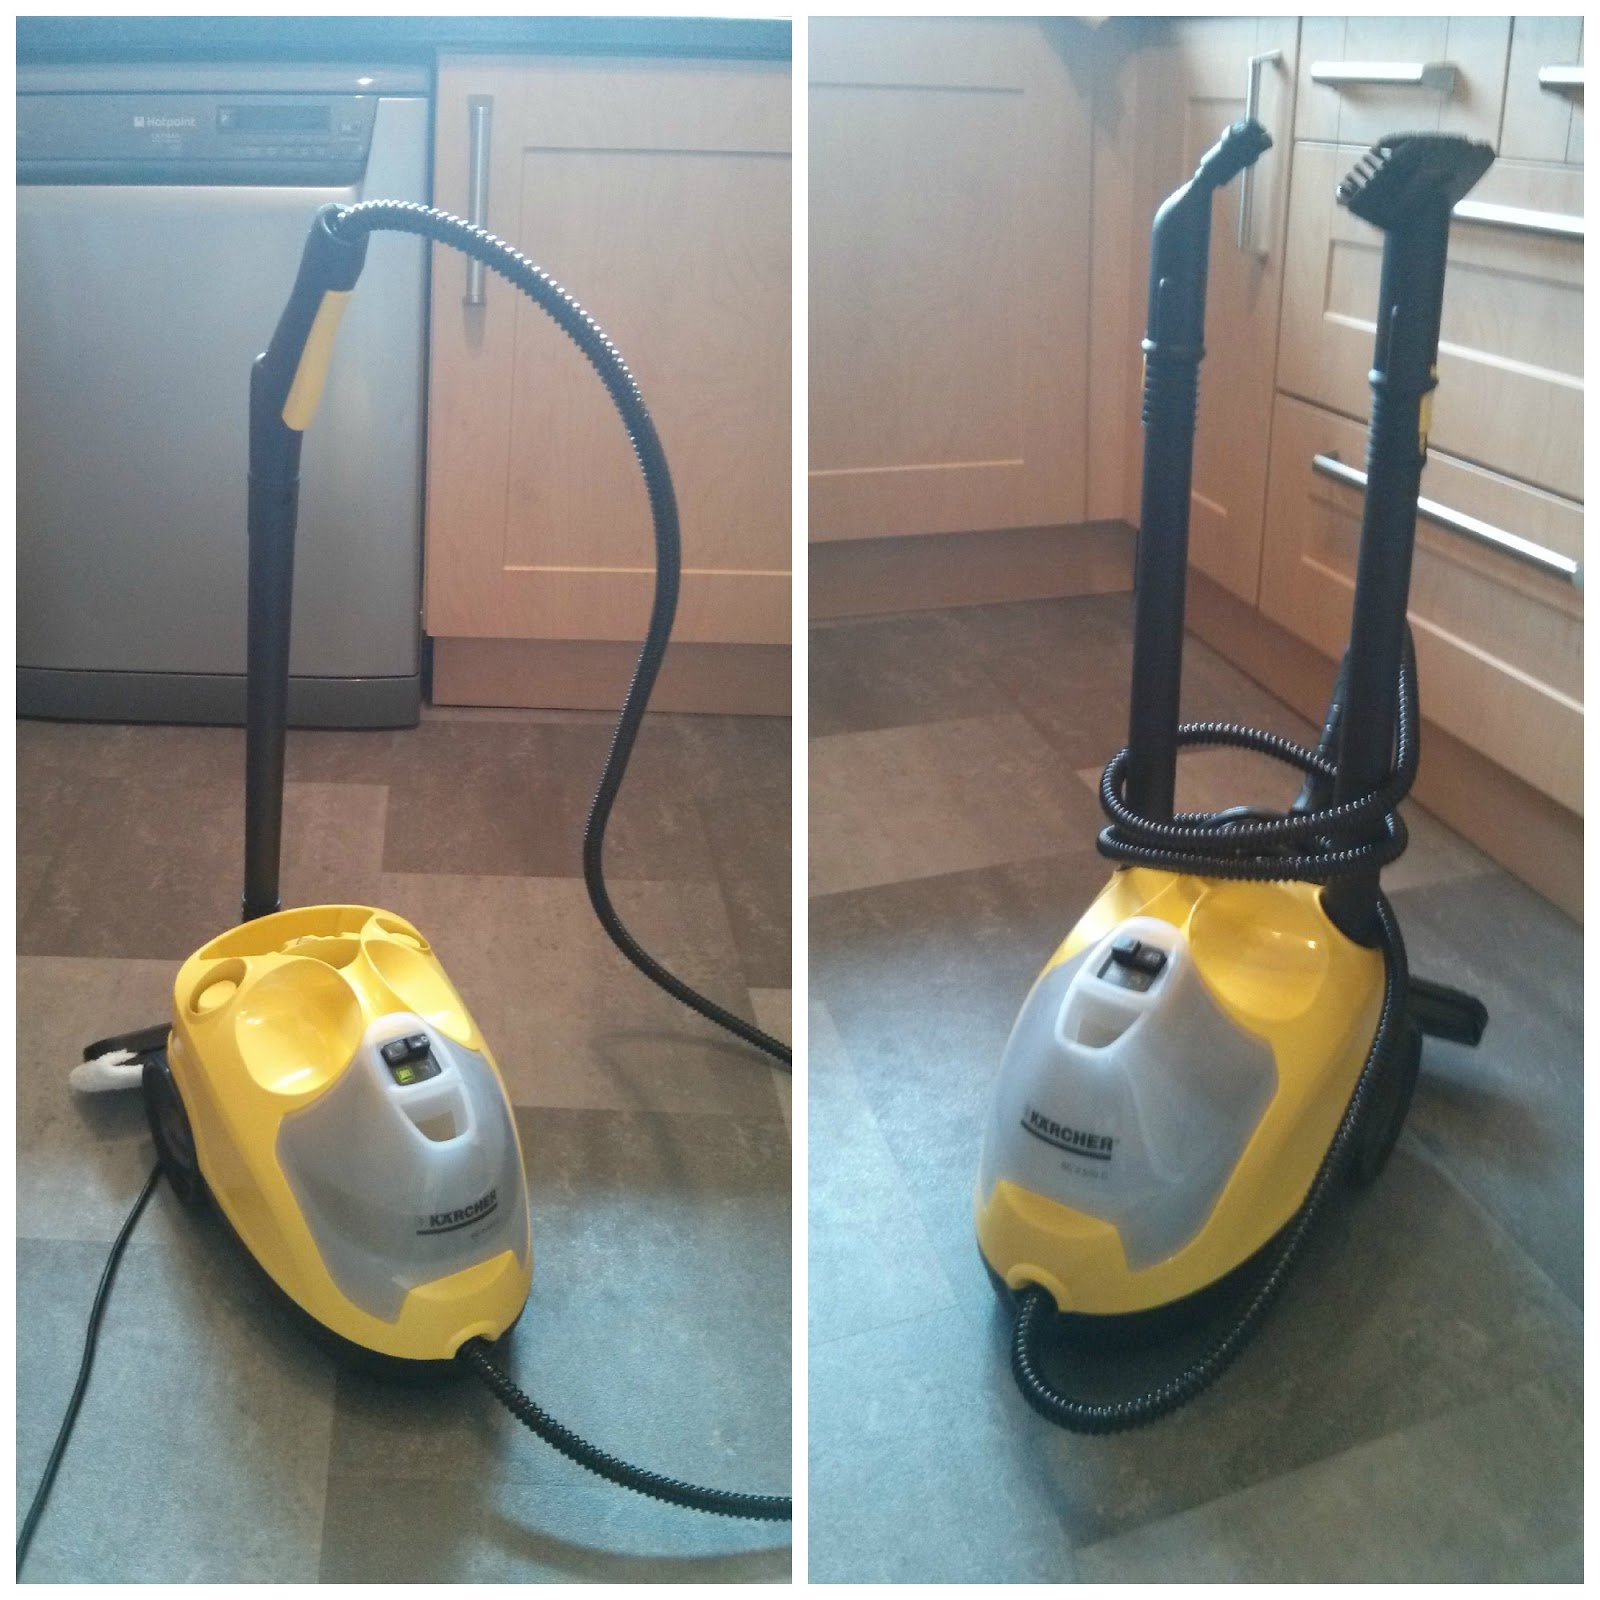 Kitchen Floor Steam Cleaner Medicated Follower Of Fashion Karcher Steam Cleaner Review